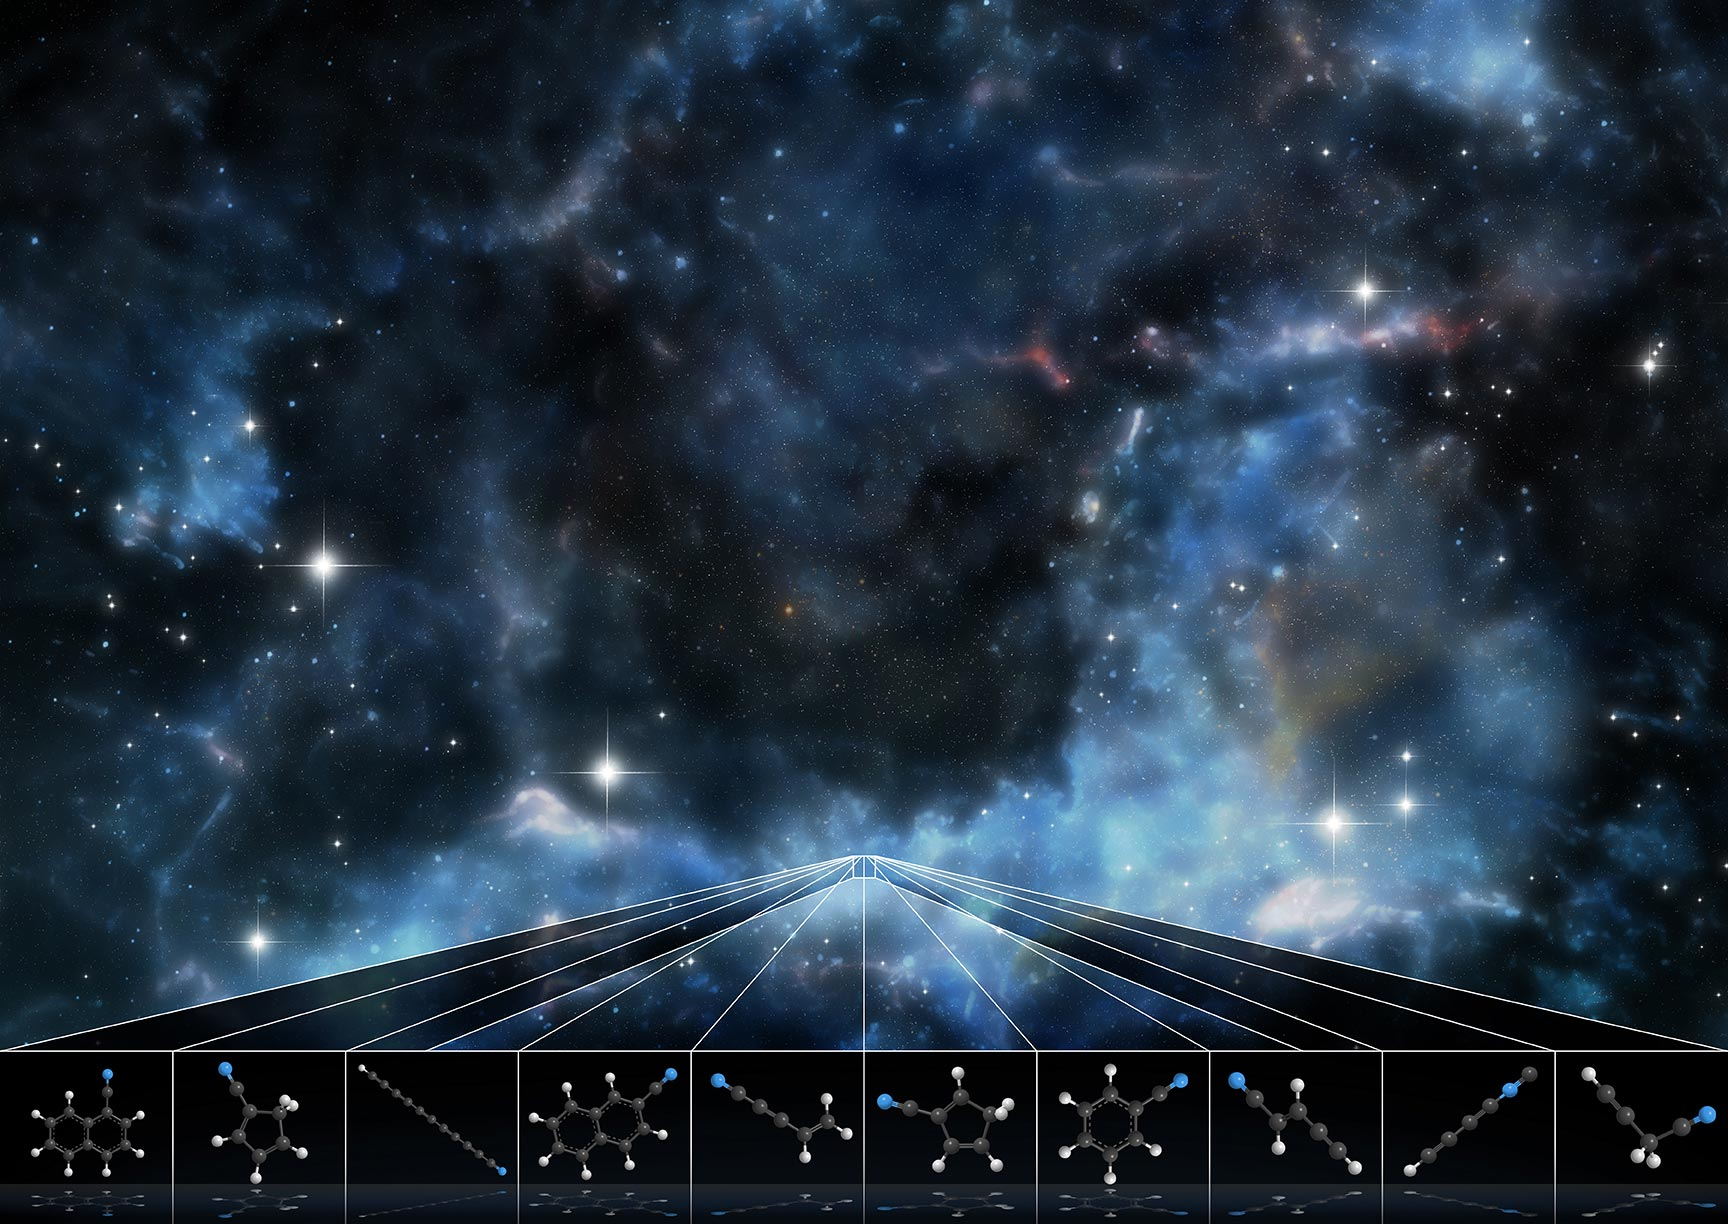 GOTHAM researchers have discovered a repository full of complex molecules never before seen in space